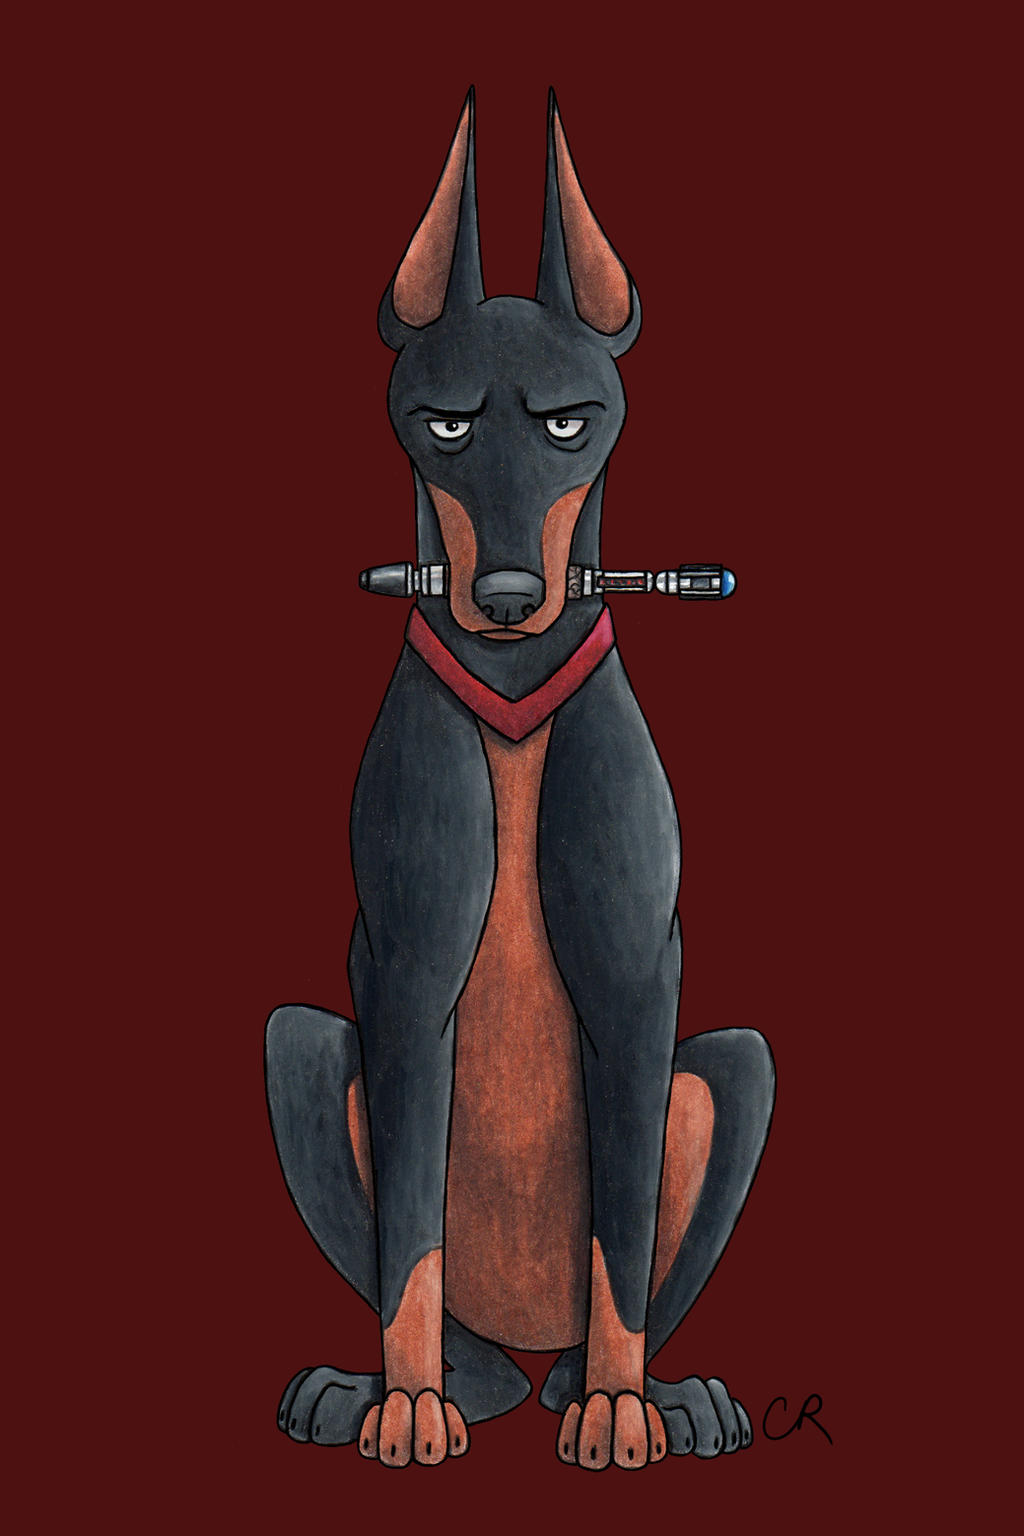 Ninth Dogtor by tee-kyrin